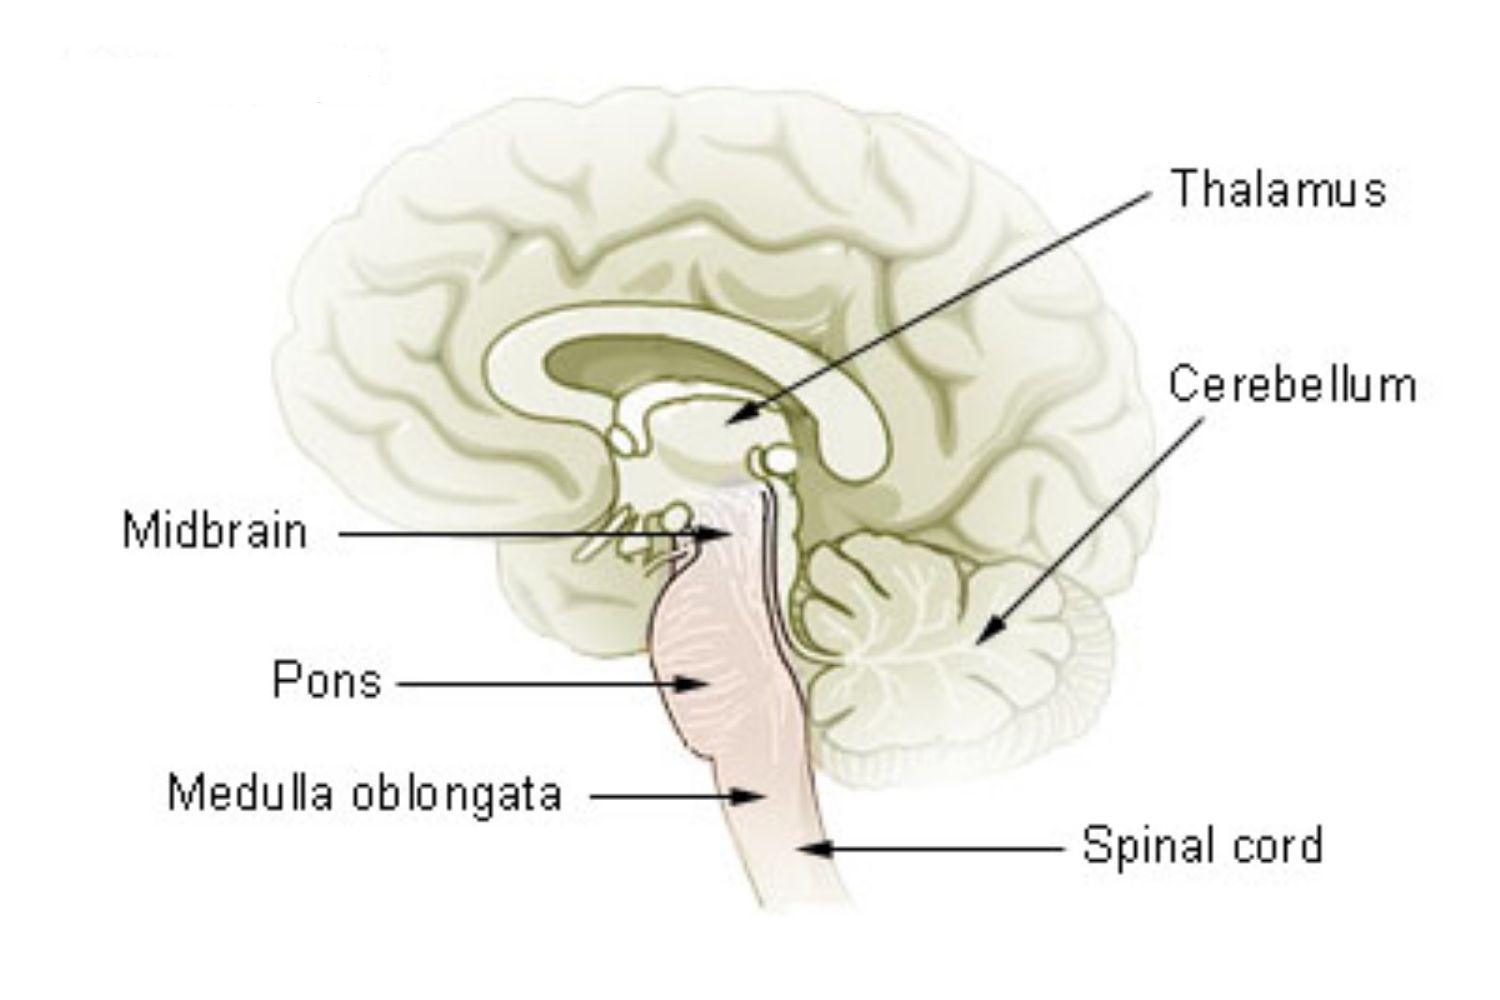 brain diagram pons leviton dimmer 3 way wiring mesencephalon midbrain function and structures